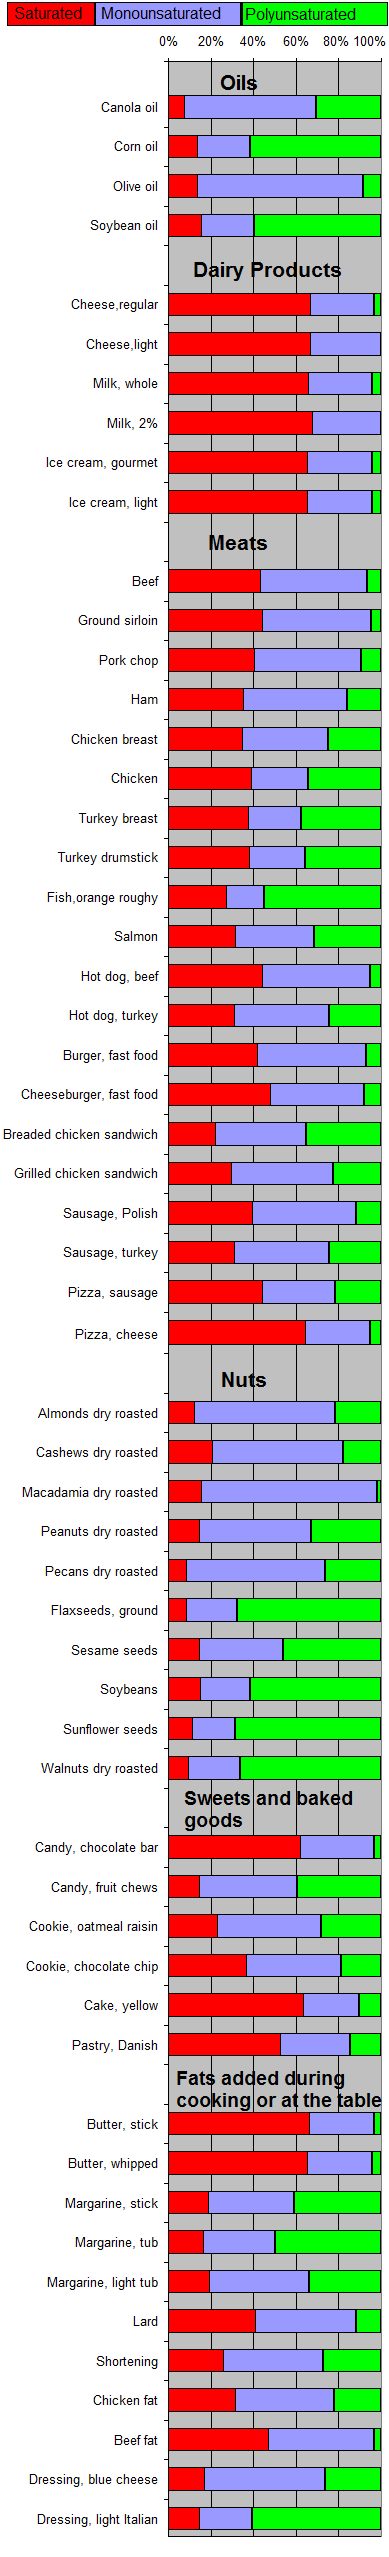 Fat composition in foods